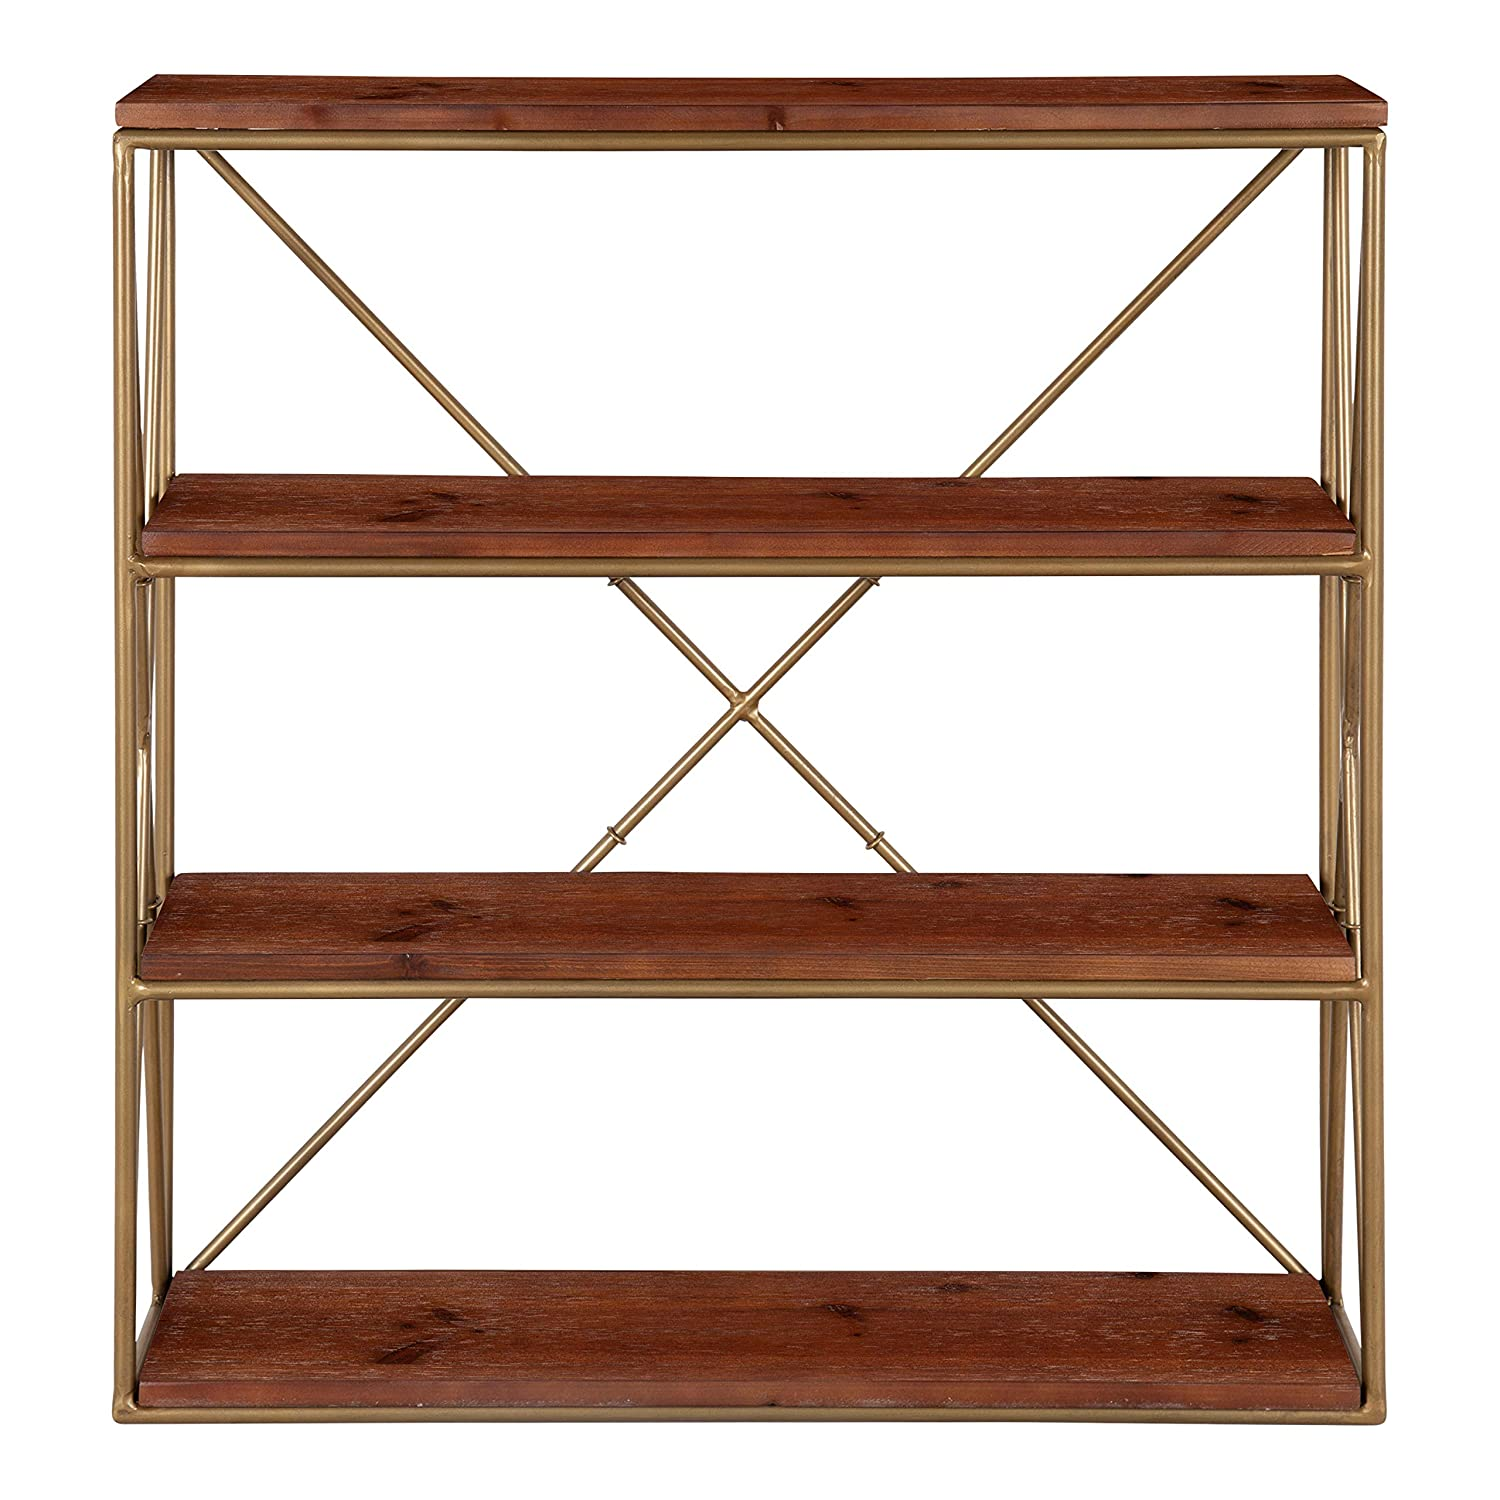 Kate And Laurel Ascencio 4-layer Modern Glam Wooden Wall Shelves With Gold  Metal Frame And Walnut Brown Display Boards, 22x6x2425